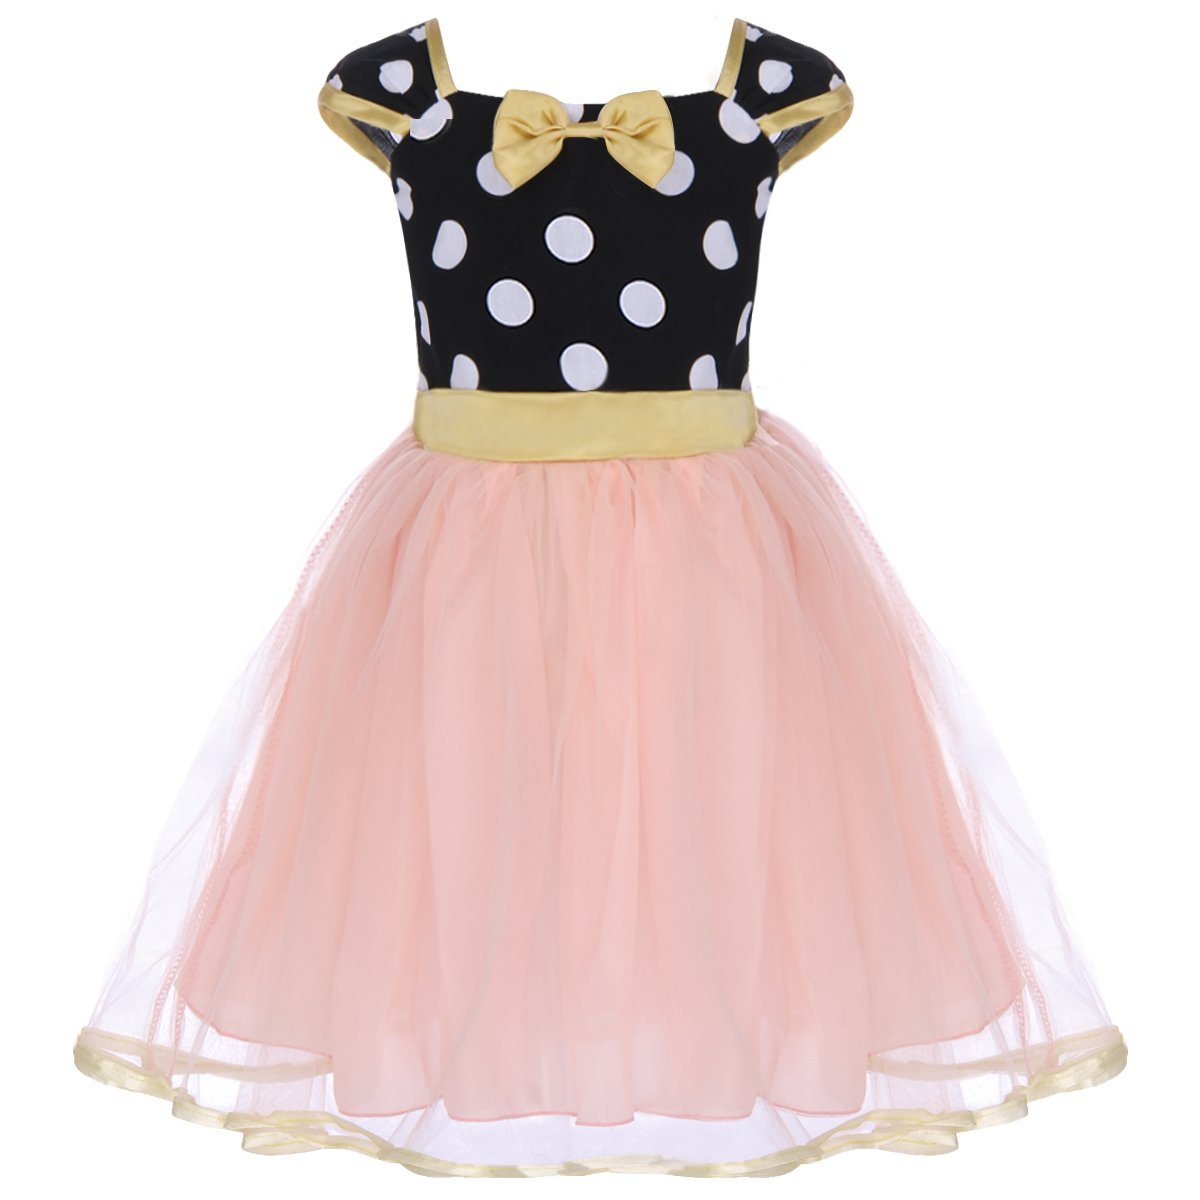 IWEMEK Toddler Girl Polka Dots Cosplay Birthday Princess Tutu Dress Up Fancy Christmas Ballet Leotard Costume with Headband